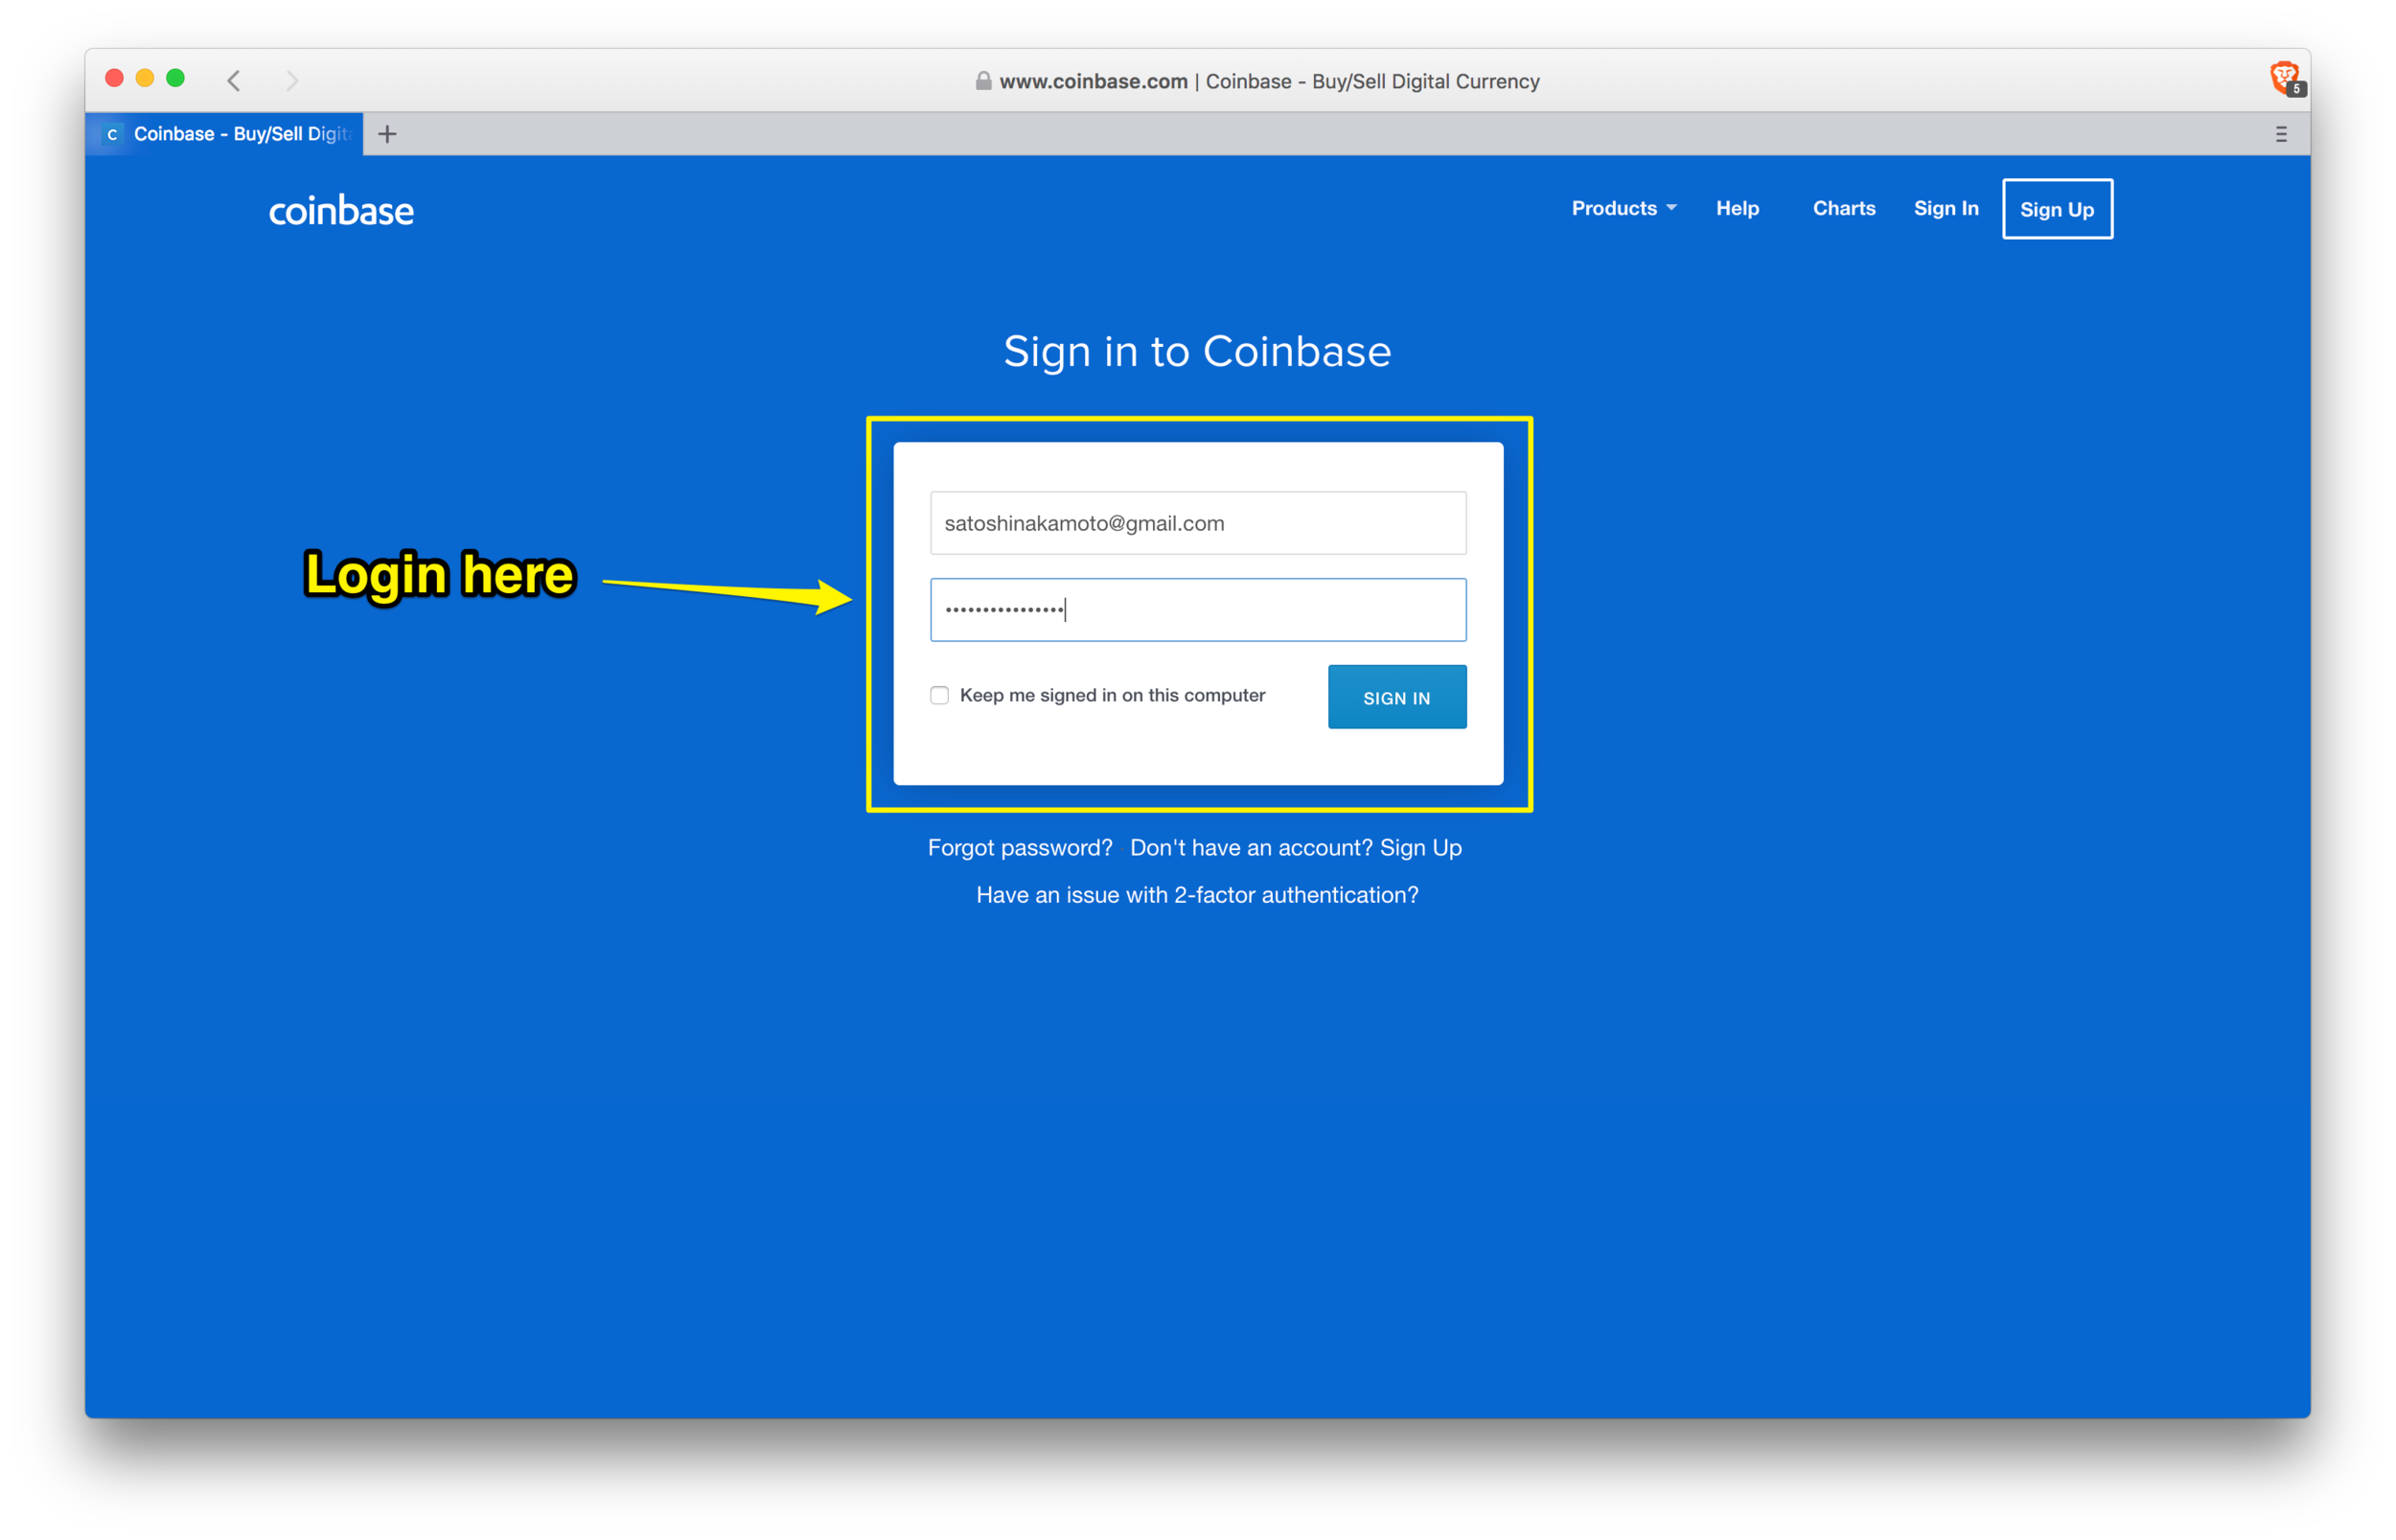 Coinbase: login screen